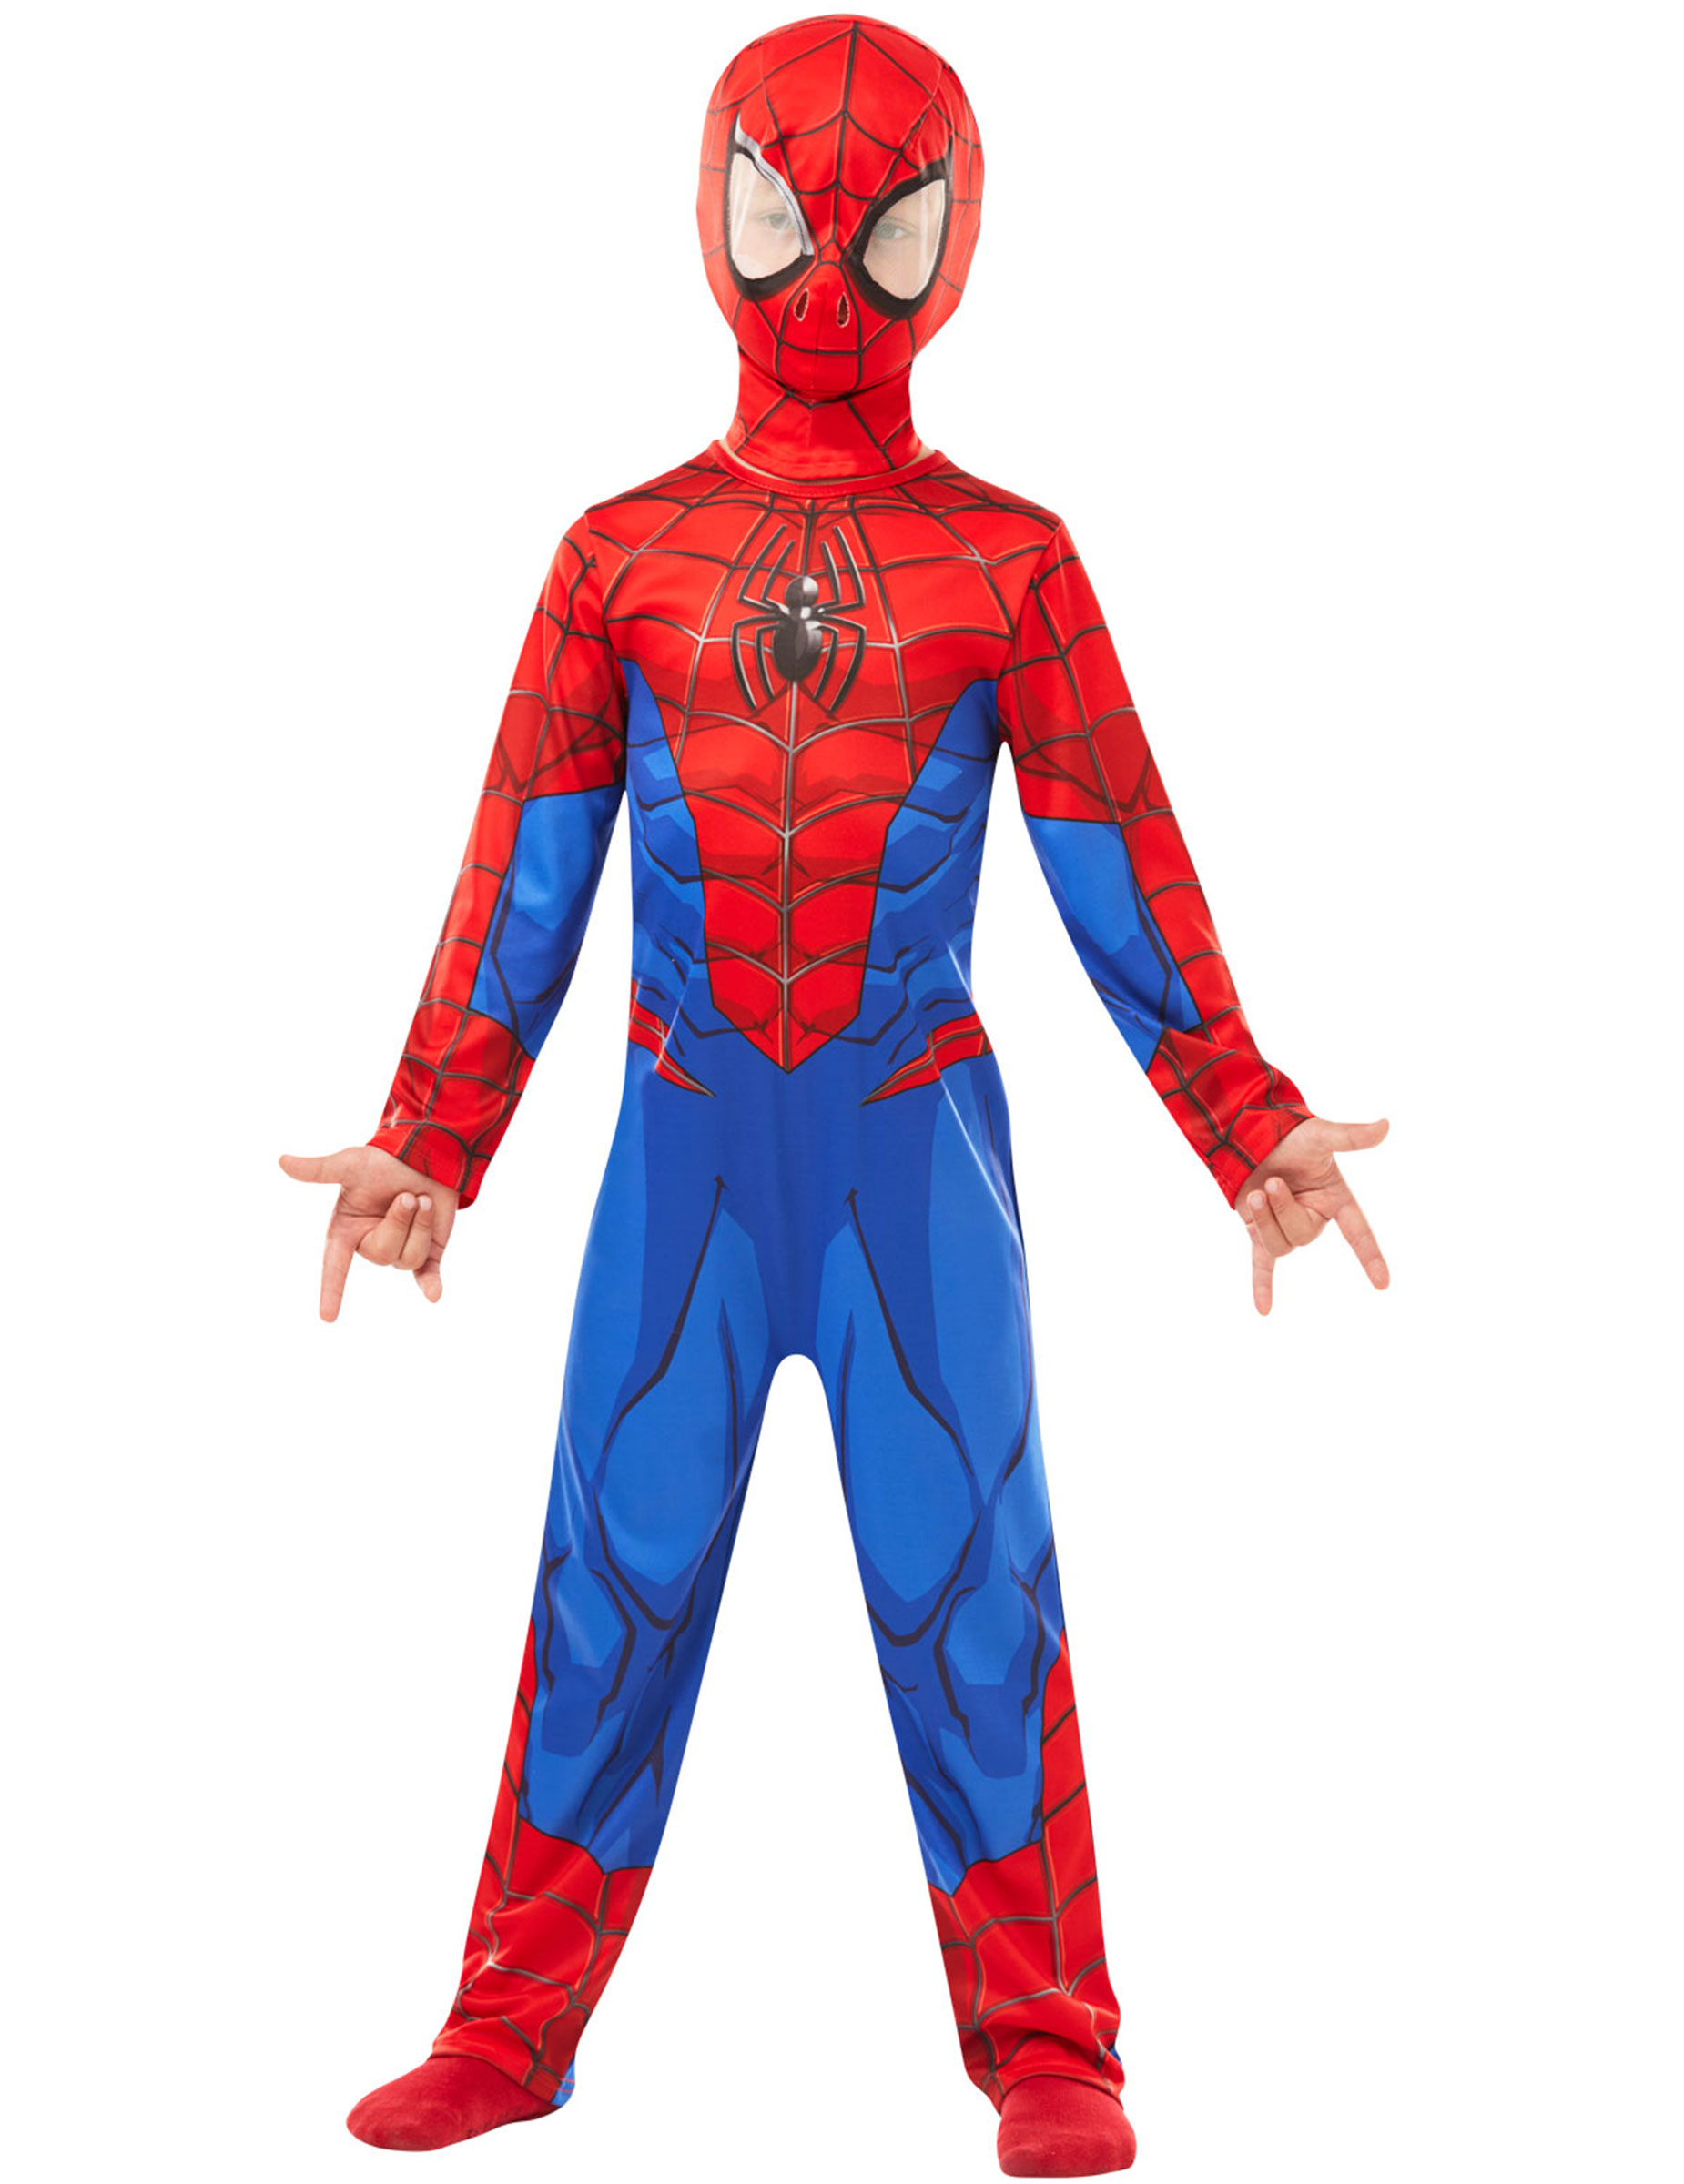 spiderman kost m f r kinder fasching rot blau g nstige faschings kost me bei karneval megastore. Black Bedroom Furniture Sets. Home Design Ideas